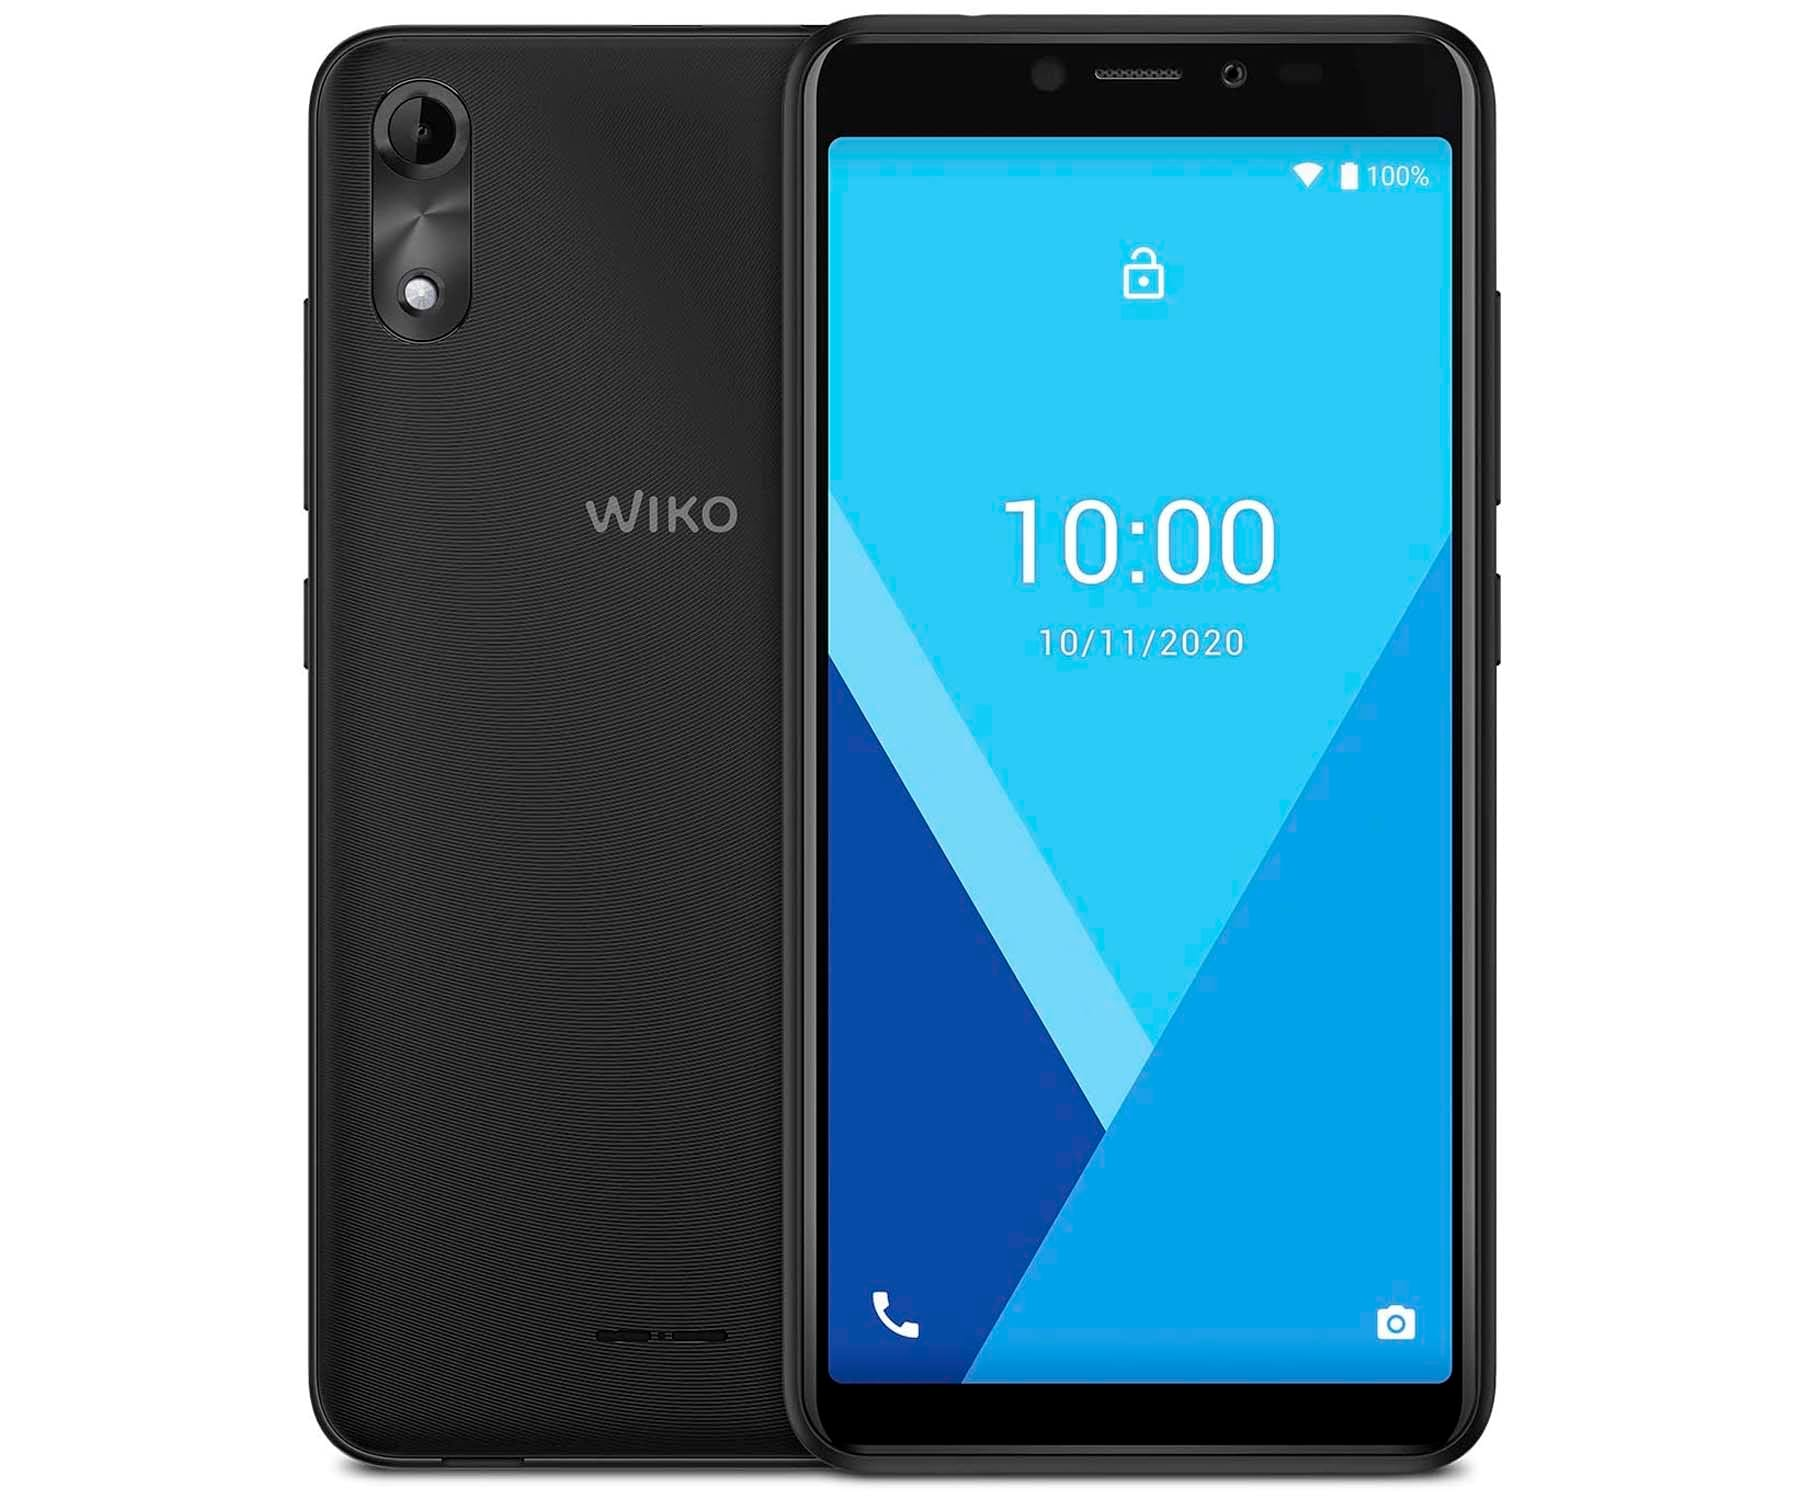 WIKO Y51 GRIS OSCURO MÓVIL 3G DUAL SIM 5.45'' TN FWVGA+ QUADCORE 16GB 1GB RAM CAM 5MP SELFIES 5MP